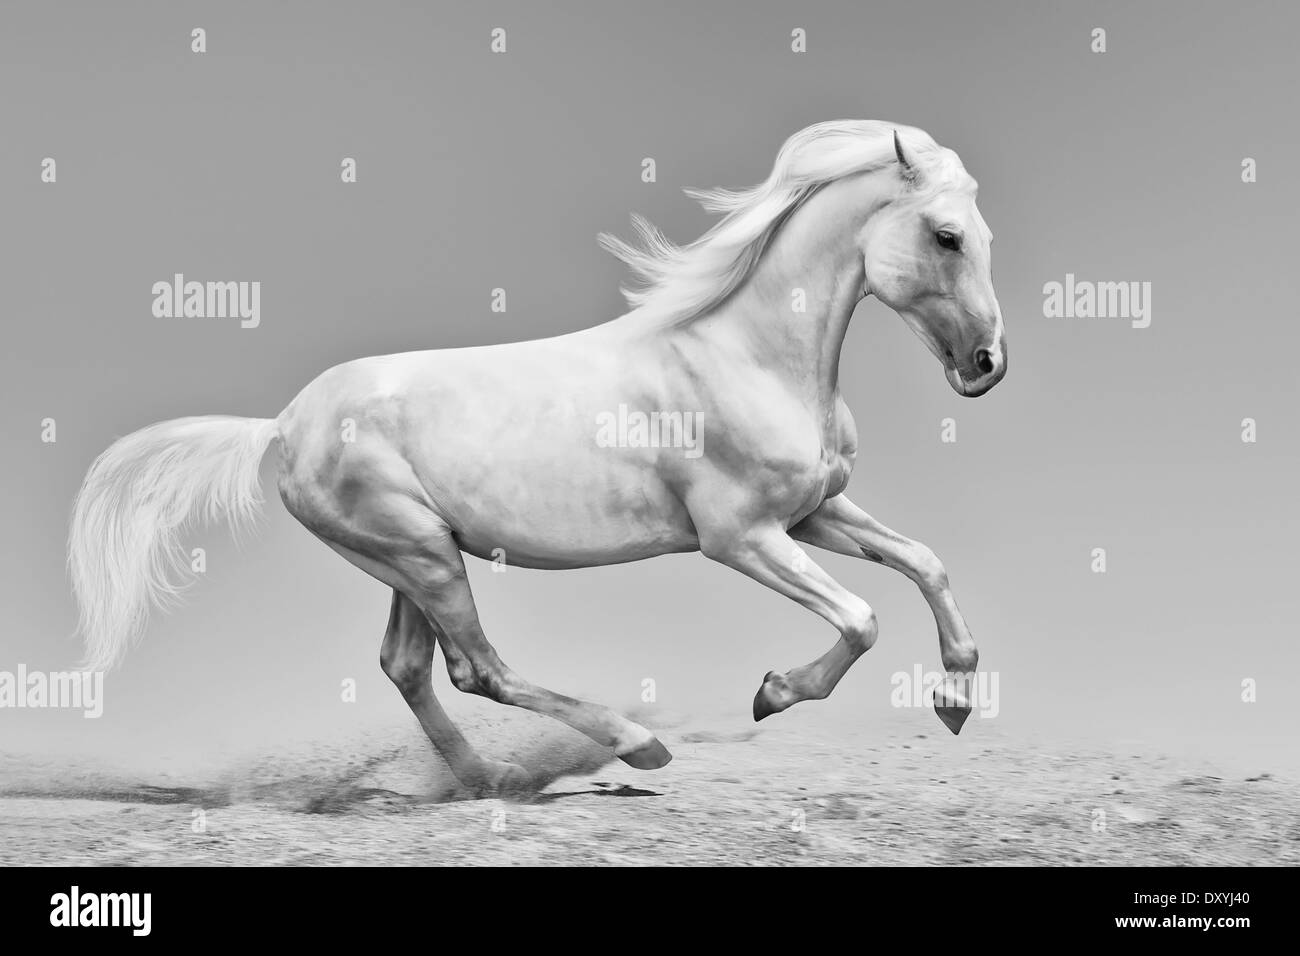 Beautiful Orlov trotter running on sandy soil, black and white photo - Stock Image